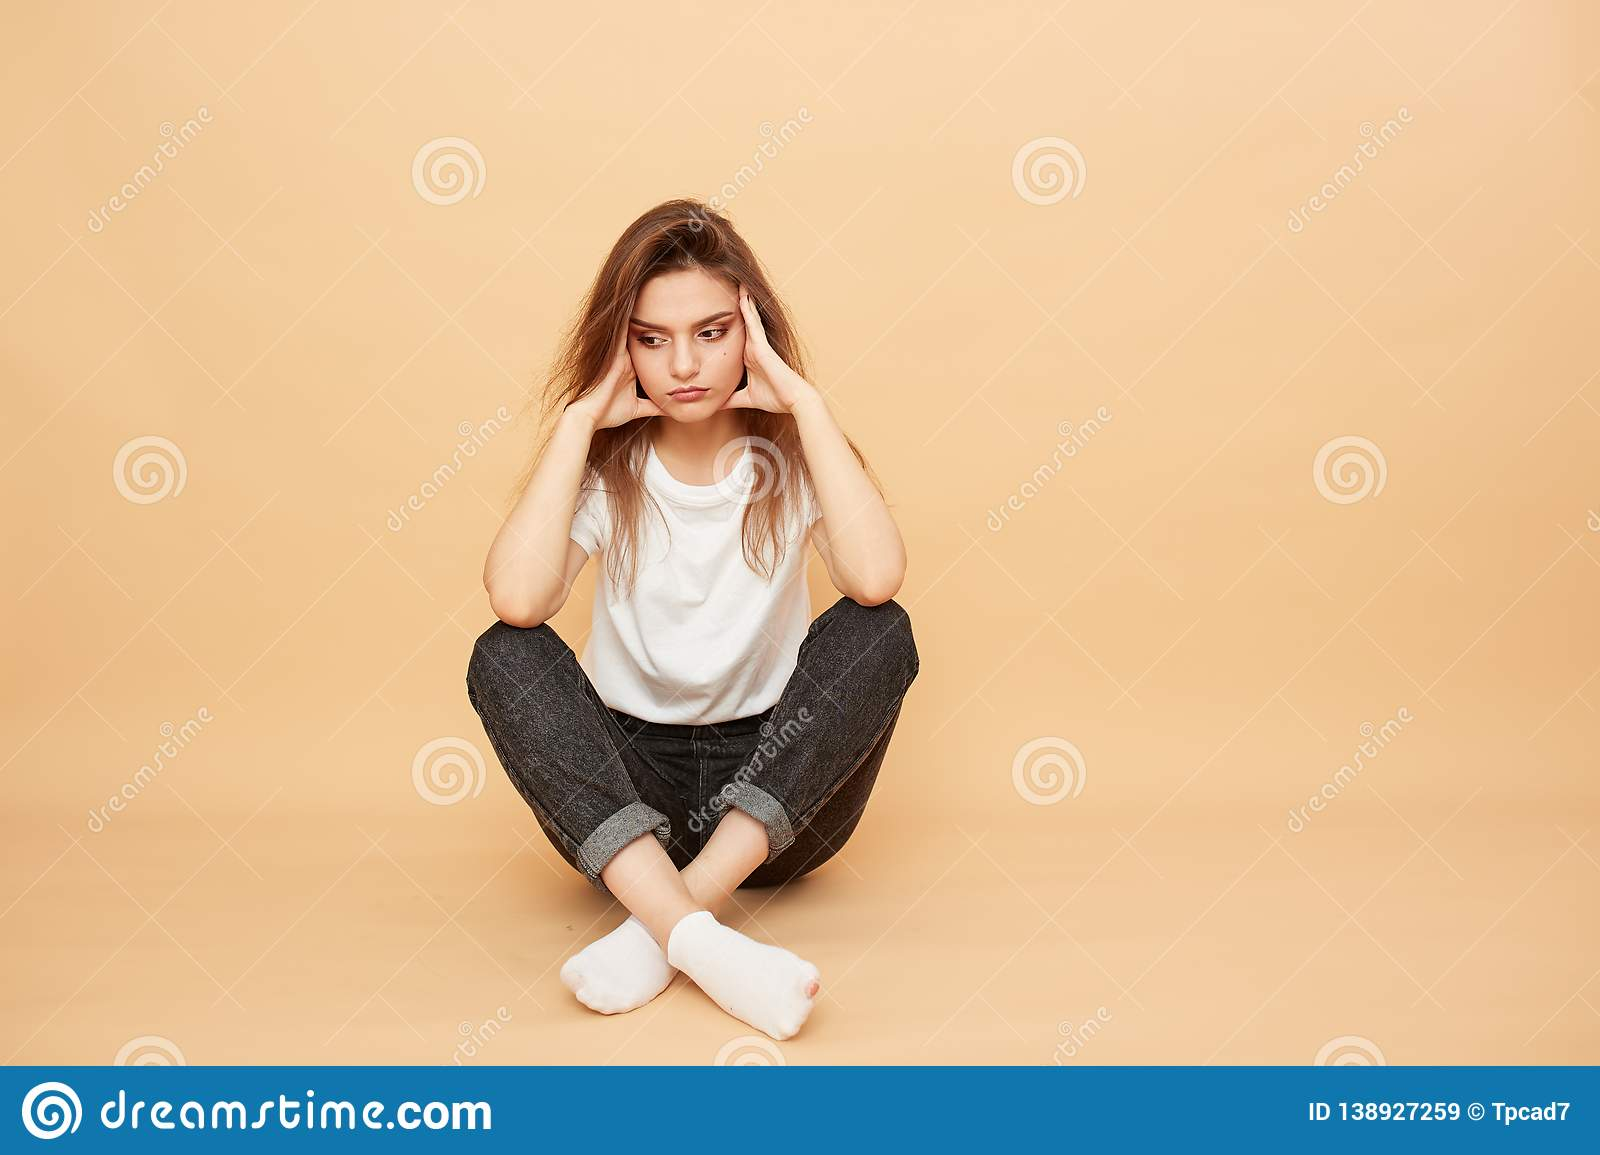 Sad girl dressed in white t-shirt, jeans and white socks sits on the floor on the beige background in the studio